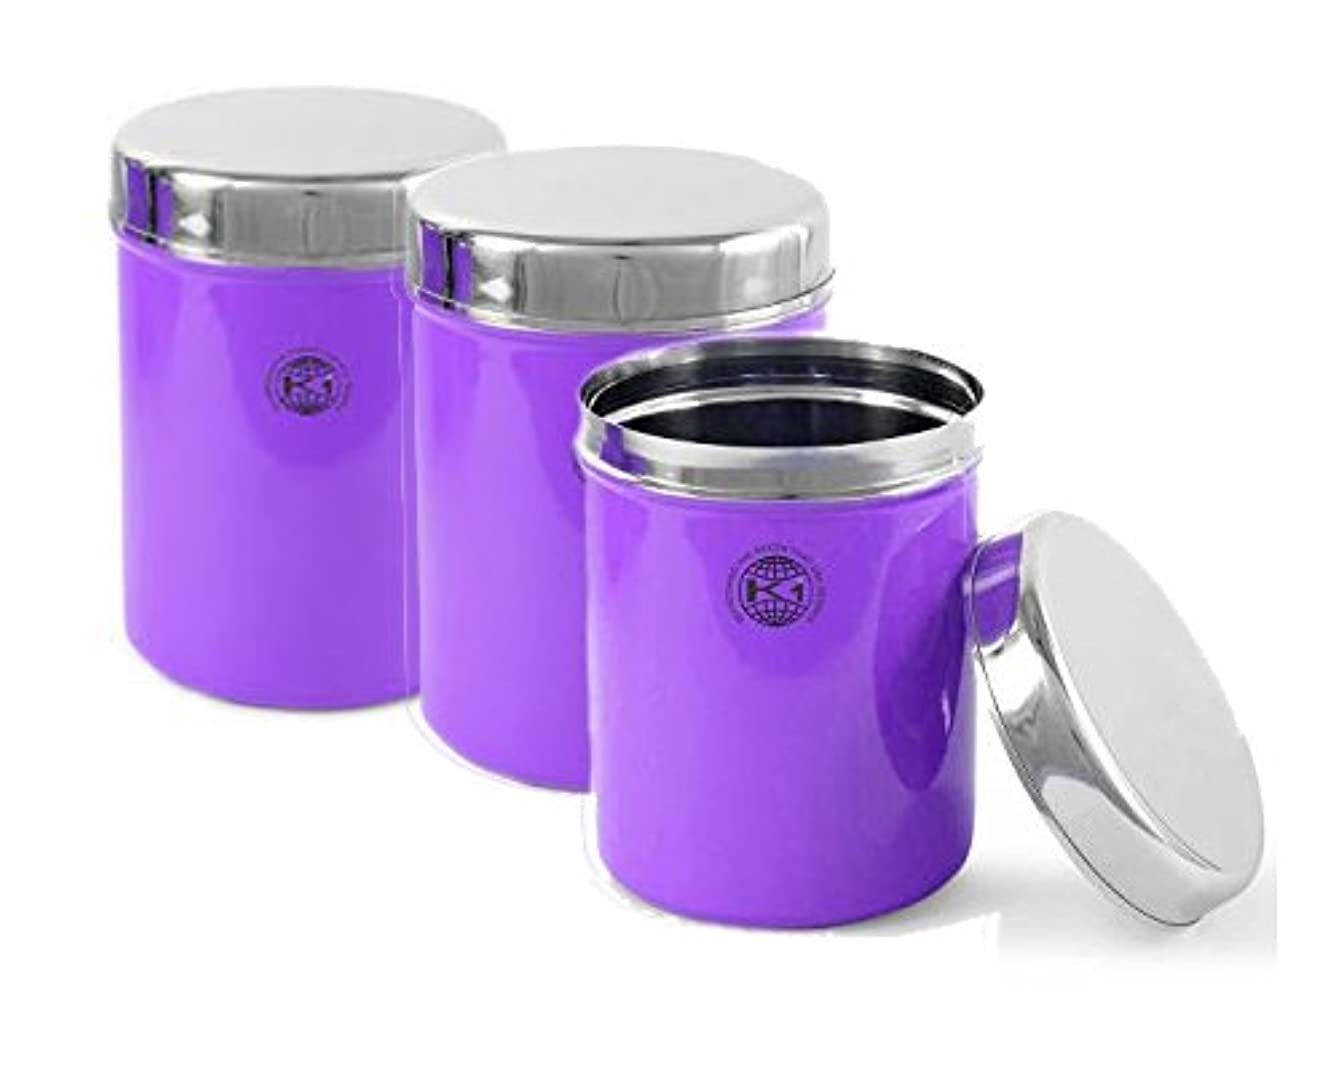 King International Stainless Steel Purple Multipurpose Storage Box,Container Set Of 3 Piece, 13 cm, 1000 ml